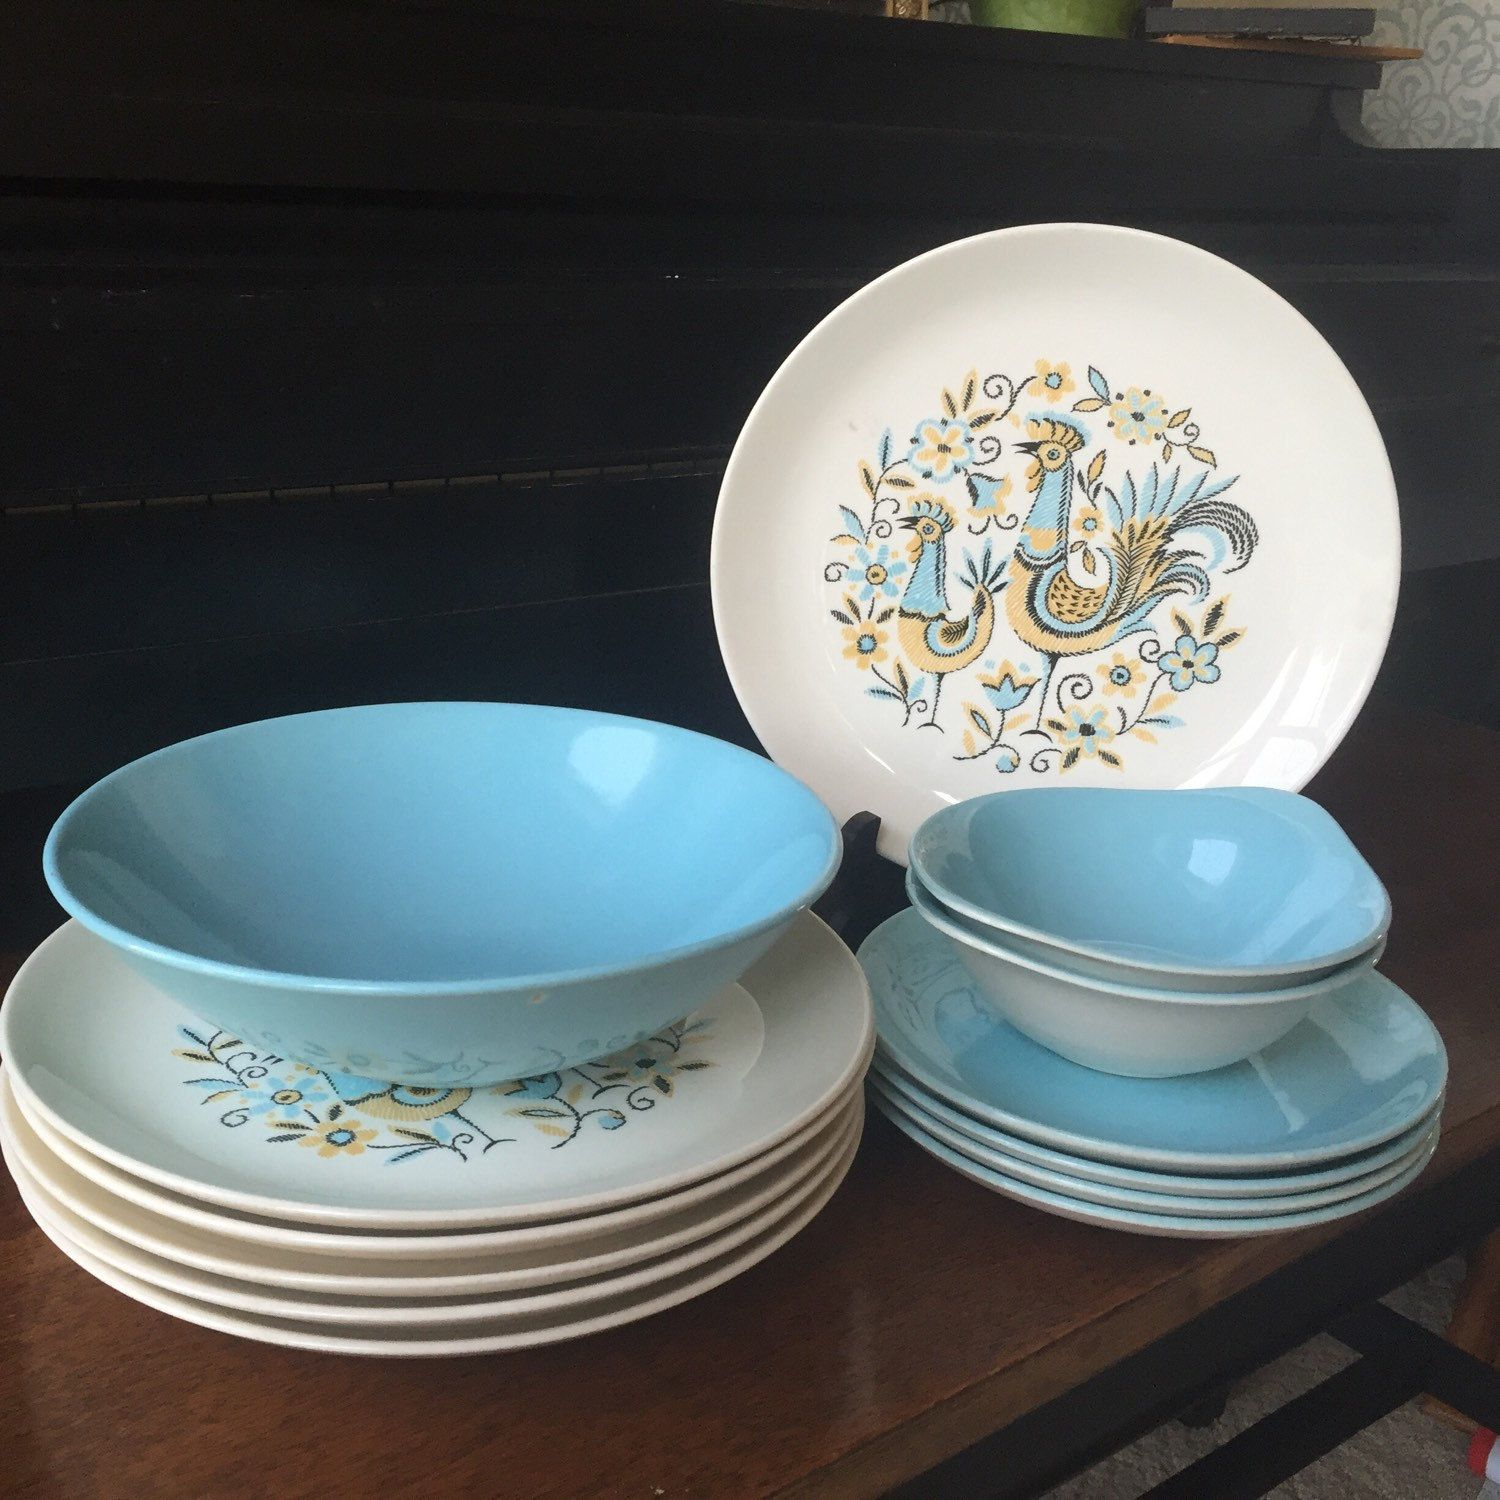 Look at these beautiful Peacock Garden Dishes by Steubenville!! We also have the matching platter AND creamer and sugar for sale in our shop. Check them out!